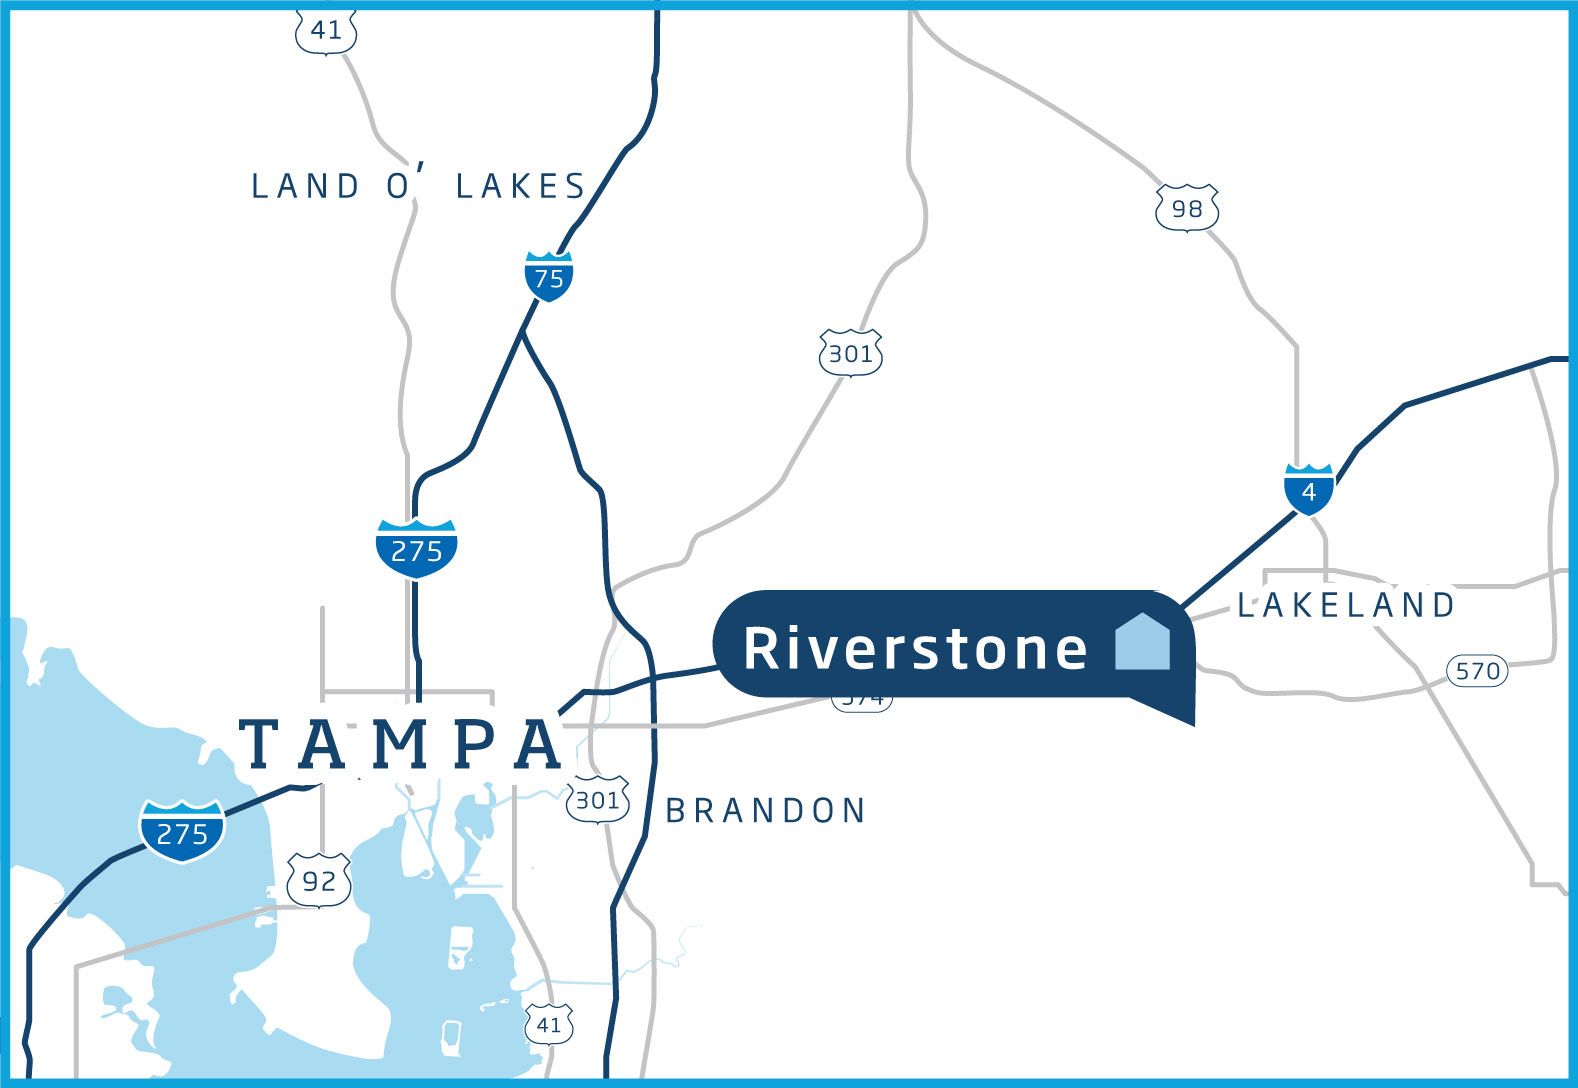 Map of the Tampa Bay area with Riverstone highlighted